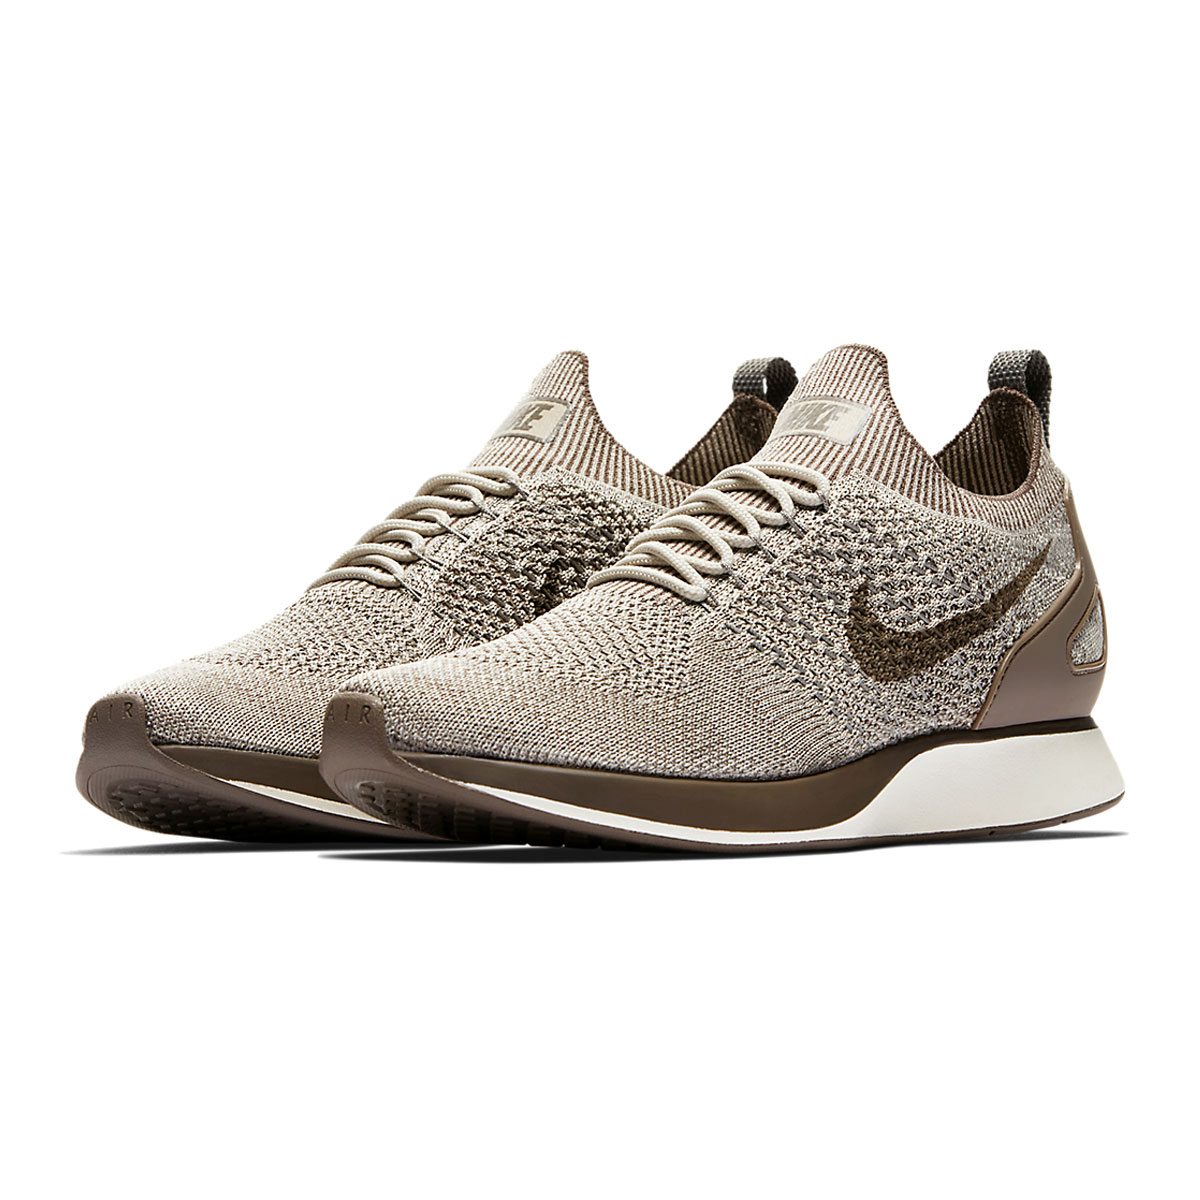 90a4a785f8a1 NIKE AIR ZOOM MARIAH FLYKNIT RACER (Nike air zoom Maria fly knit racer)  STRING DARK MUSHROOM-LIGHT CHARCOAL 17HO-I